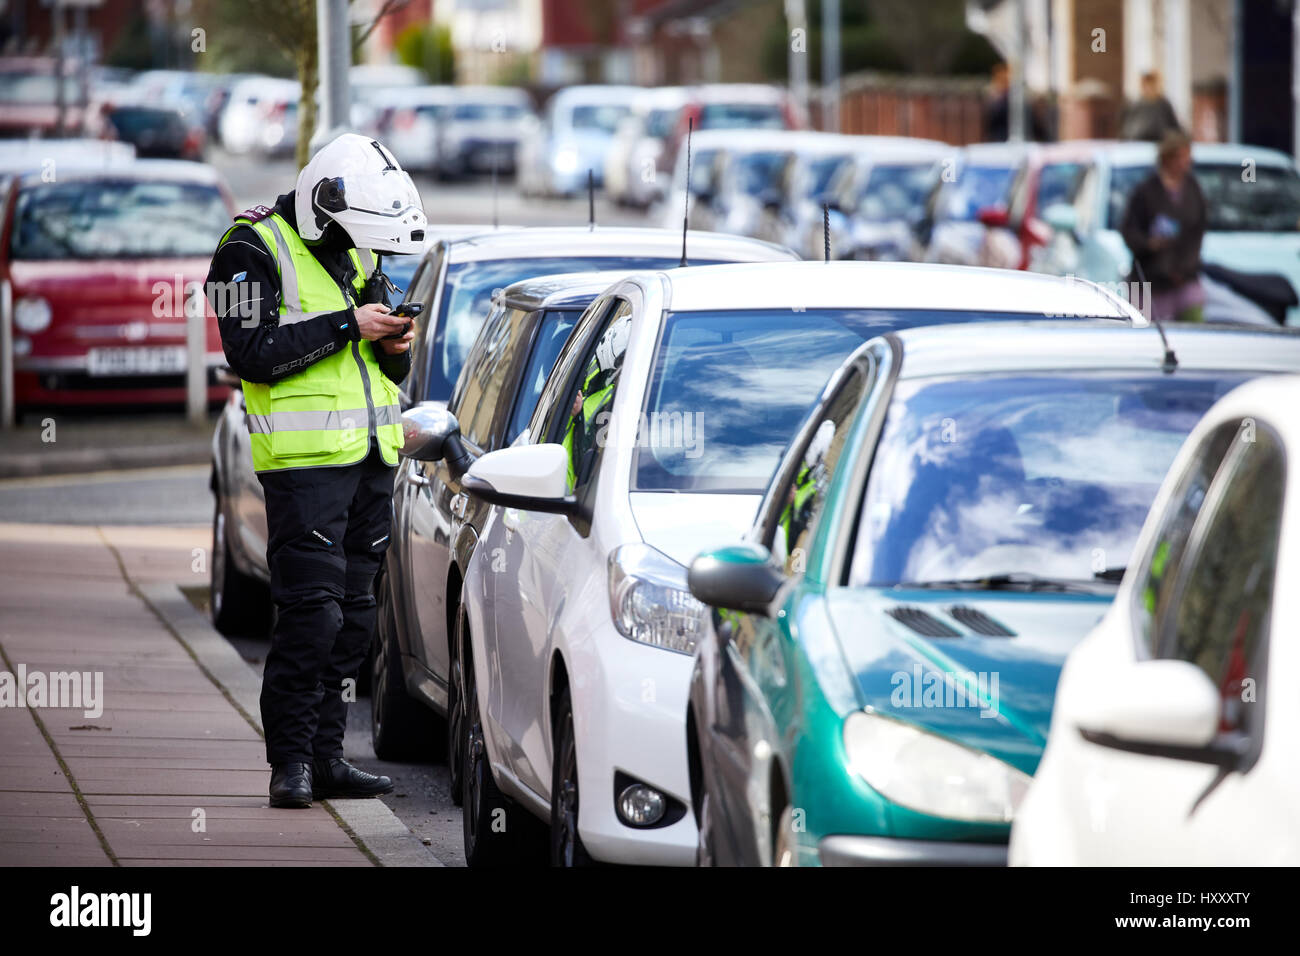 Parking enforcement offices in motorbike gear checking street parking in Hulme, Manchester, England, UK. - Stock Image